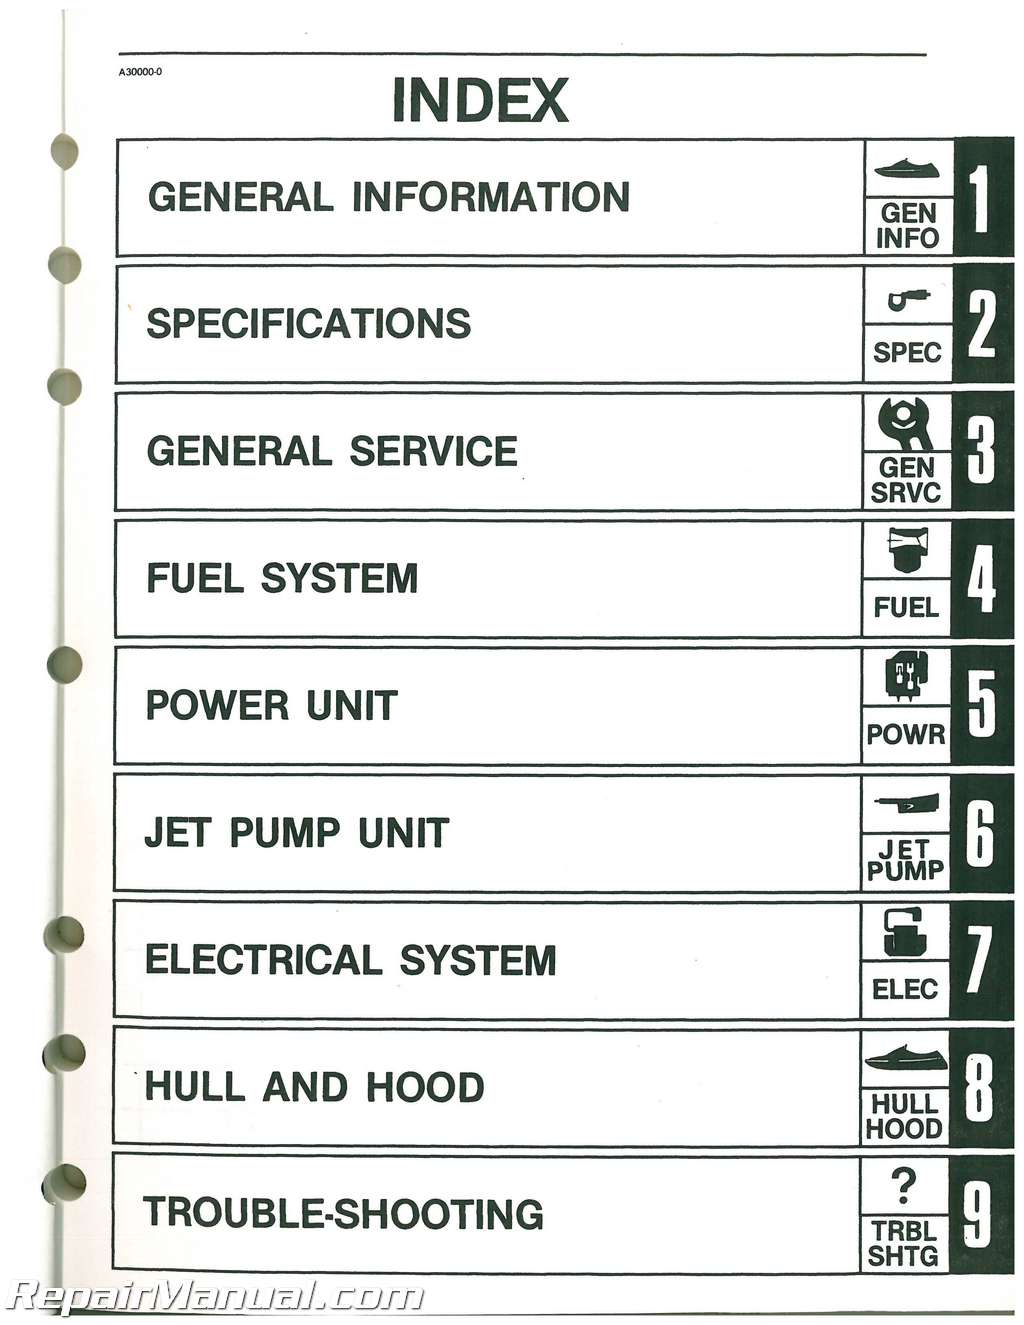 Tomtom Runner 3 Instruction Manual Wiring Diagram Social Concerns Of The 1980s Answers Rennixde